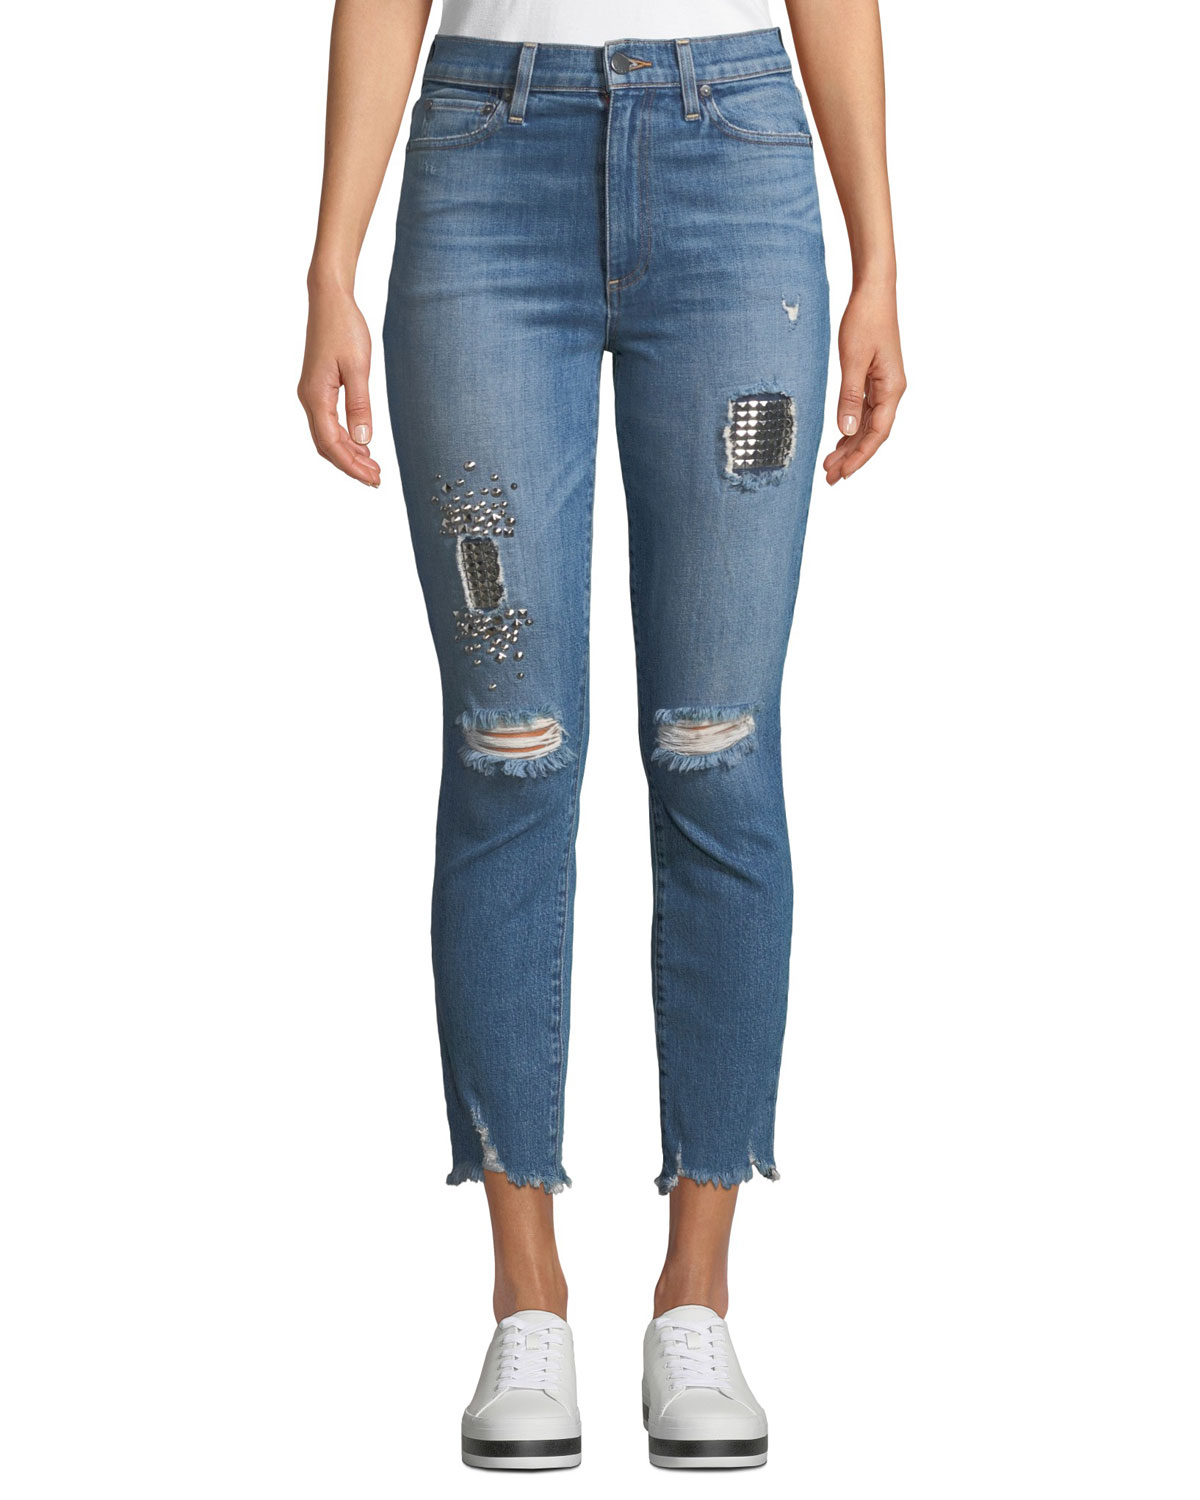 AO.LA BY ALICE+OLIVIA Good High-Rise Studded Ankle Skinny Jeans in True Lies